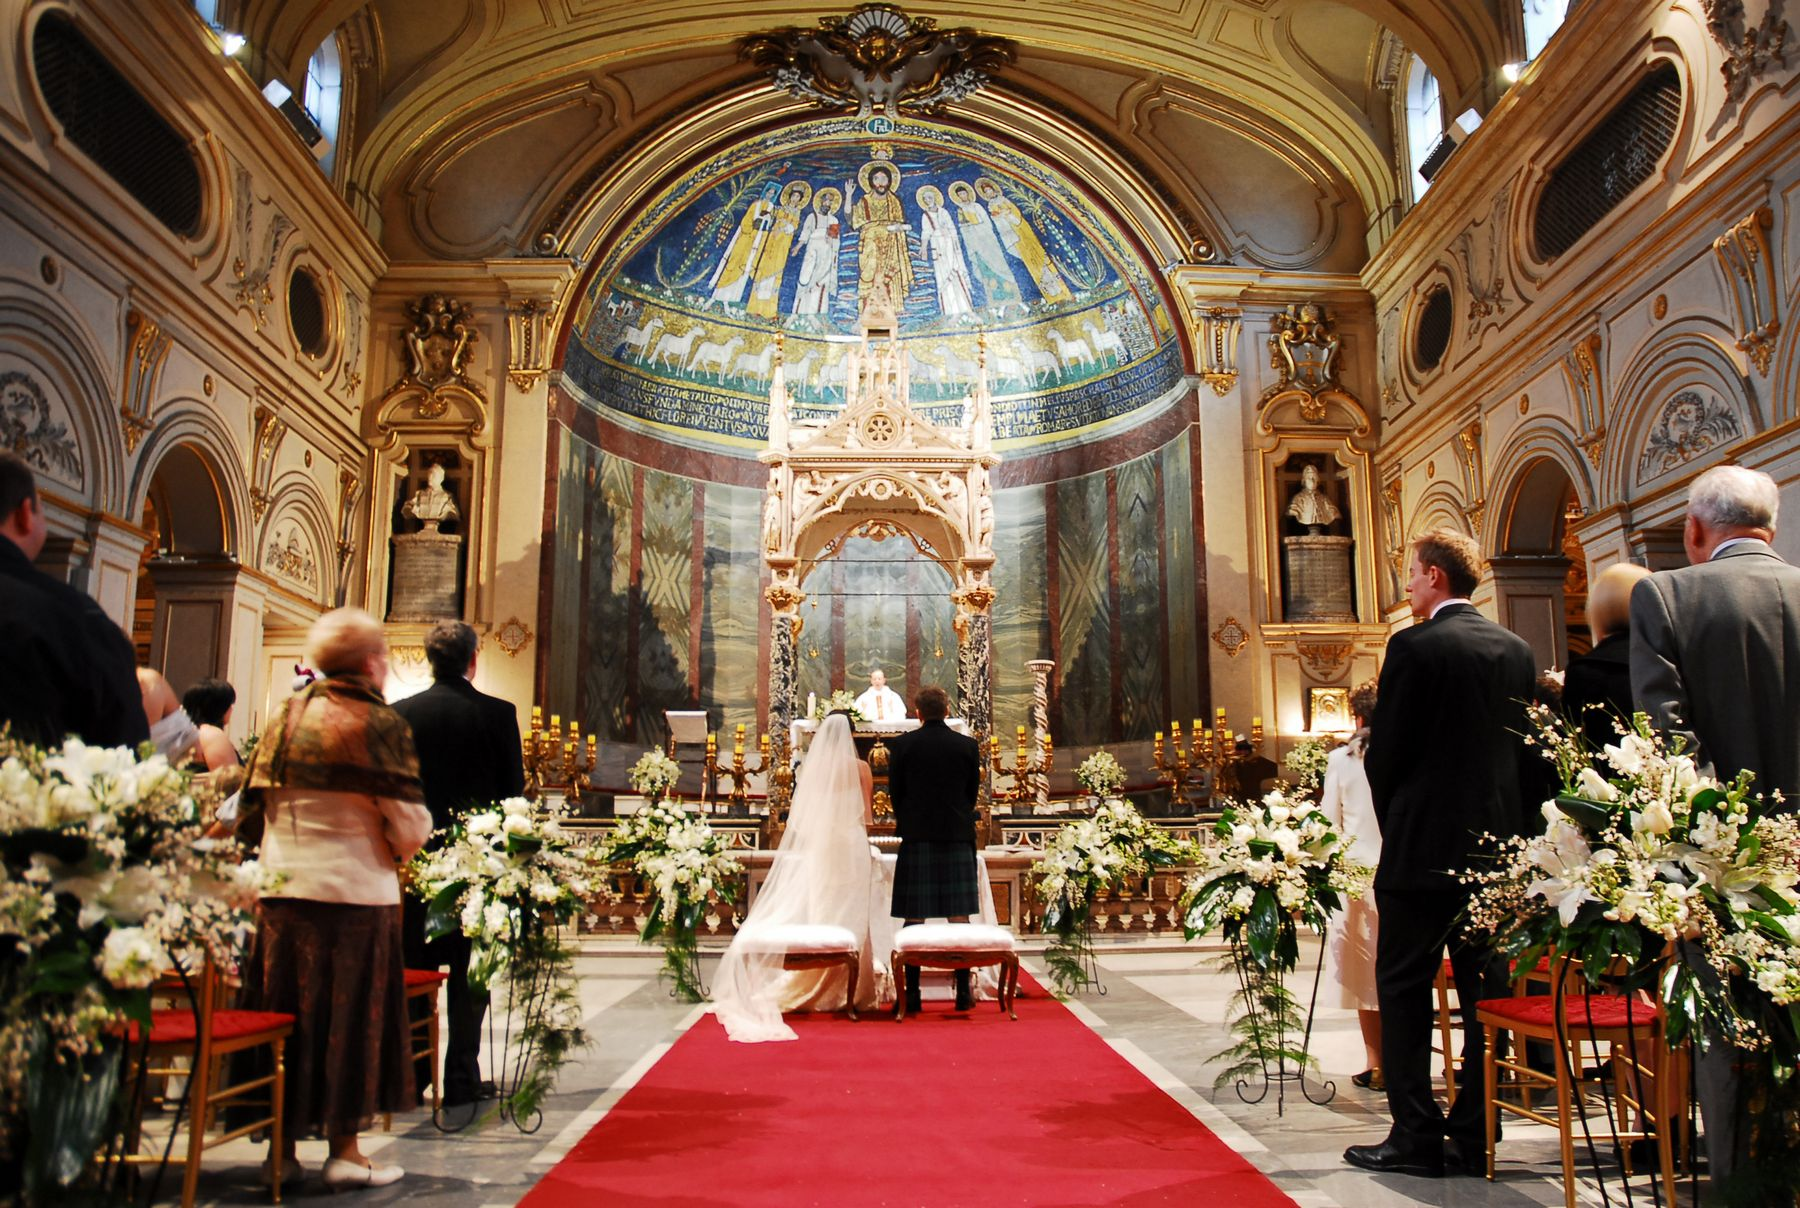 Catholic Churches Discourage Outdoor Weddings